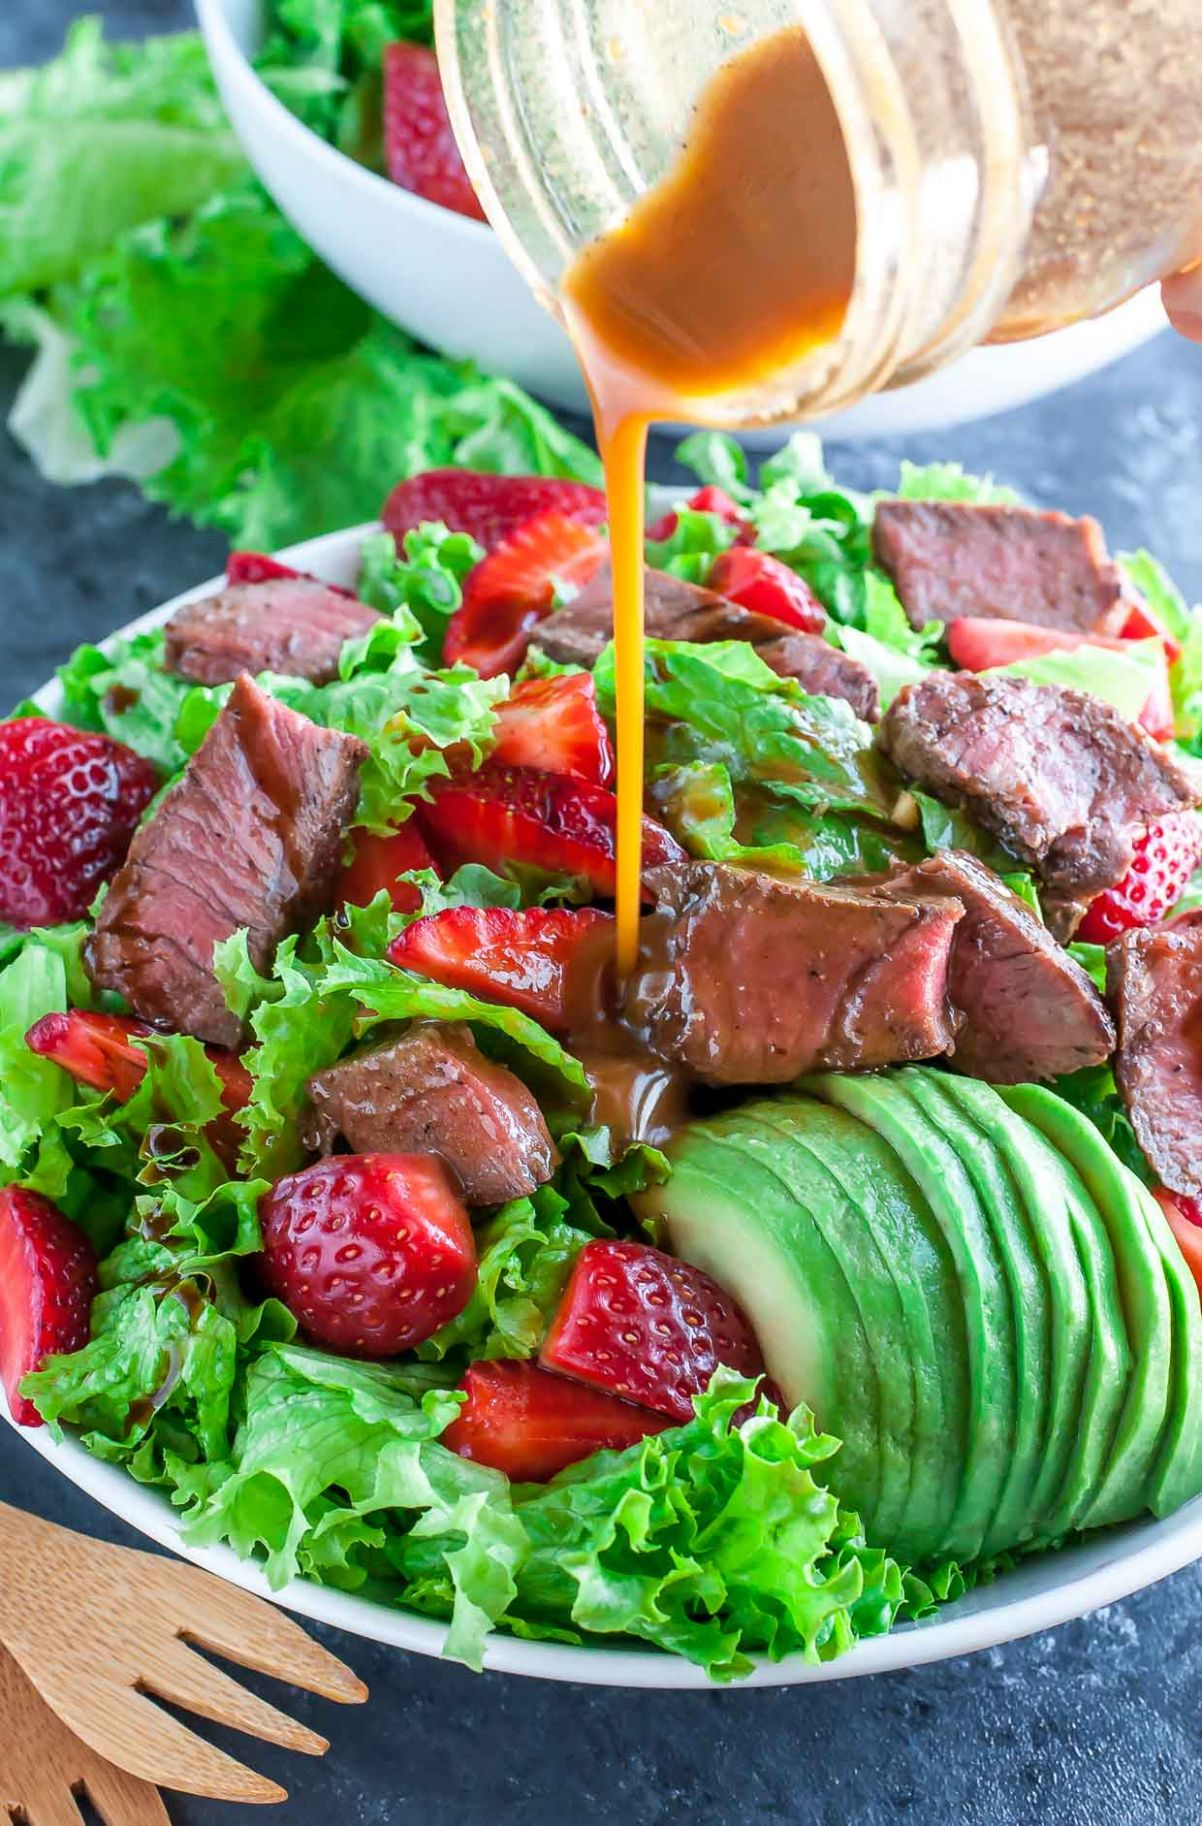 Strawberry Steak Salad with Homemade Balsamic Dressing - Salad Recipes To Go With Steak